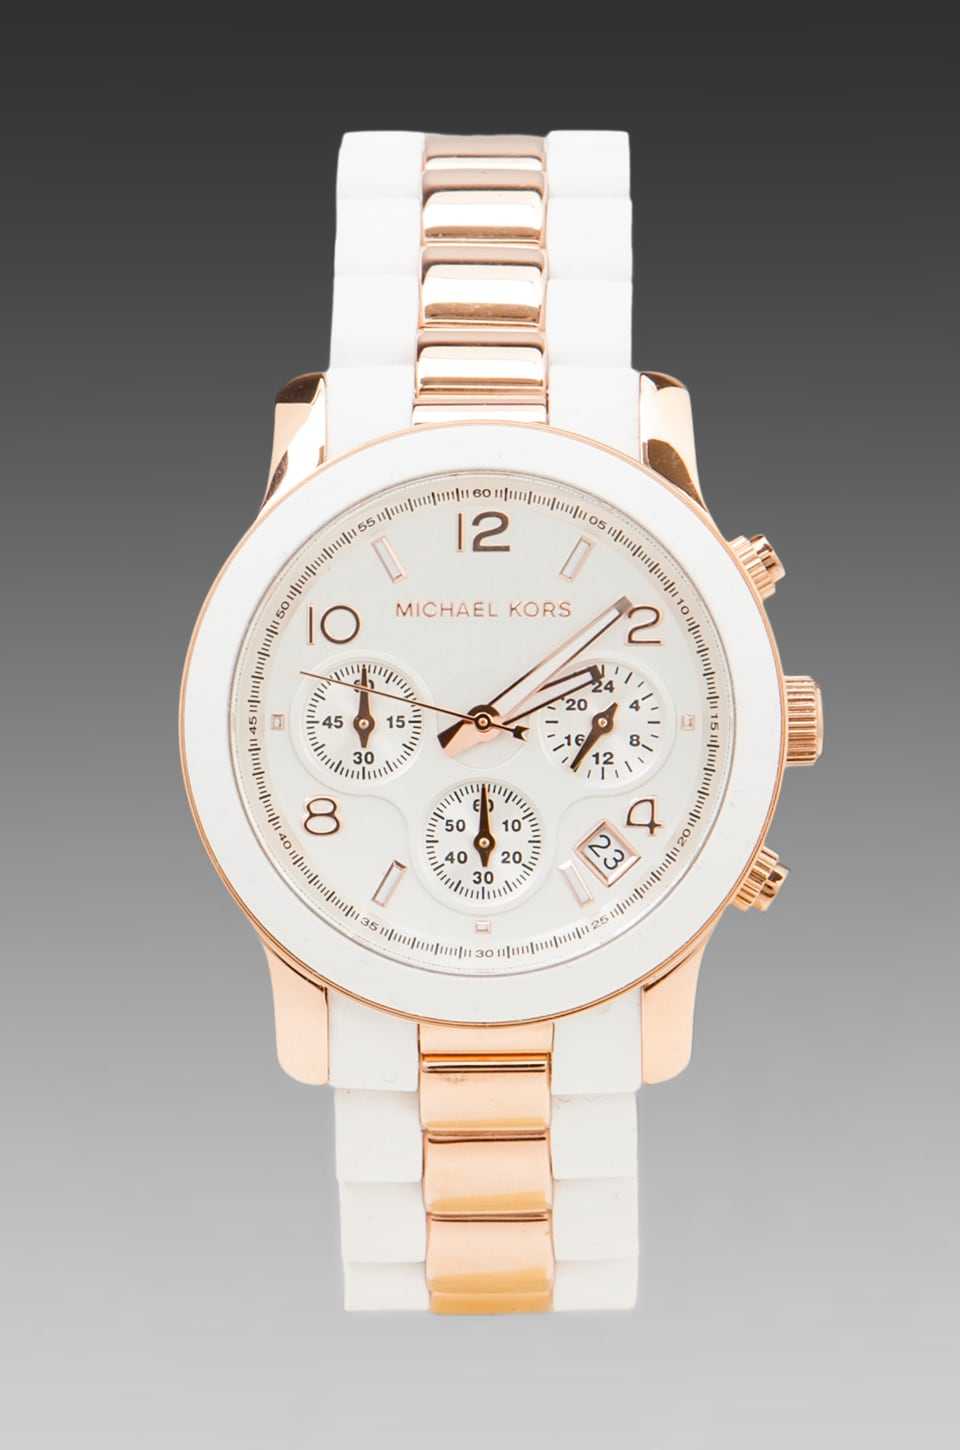 Michael Kors Runway Chronograph Watch in White/Rose Gold